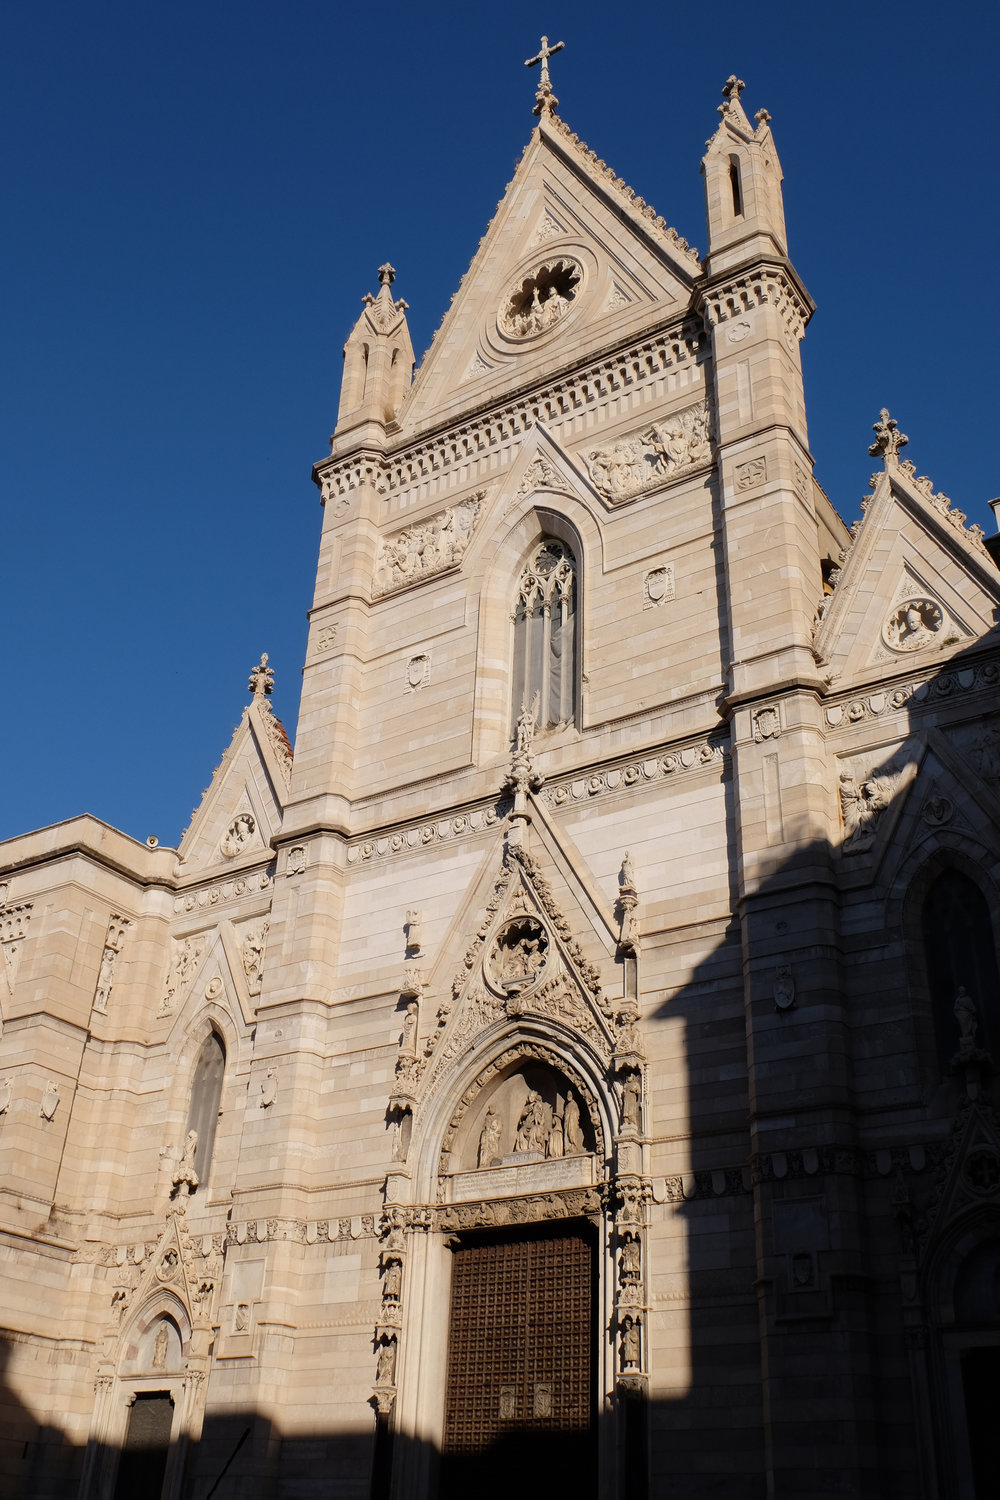 The incredible façade of the Cathedral.